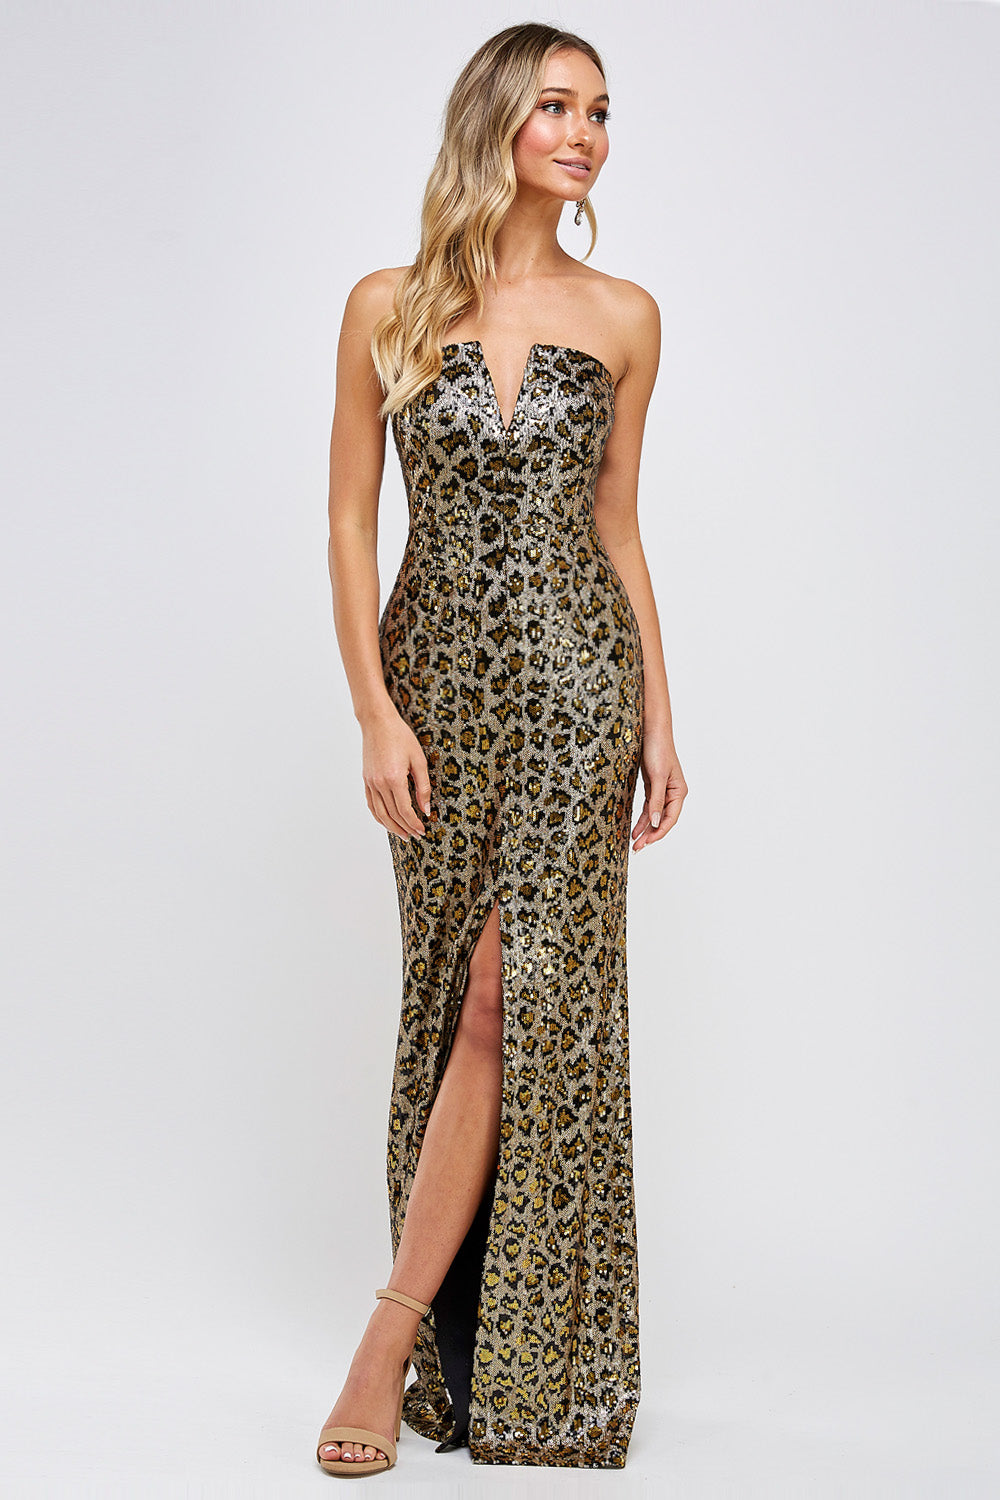 Kaia Leopard Print Prom Gown Strapless Front Slit Prom Dress M-202-Leopard